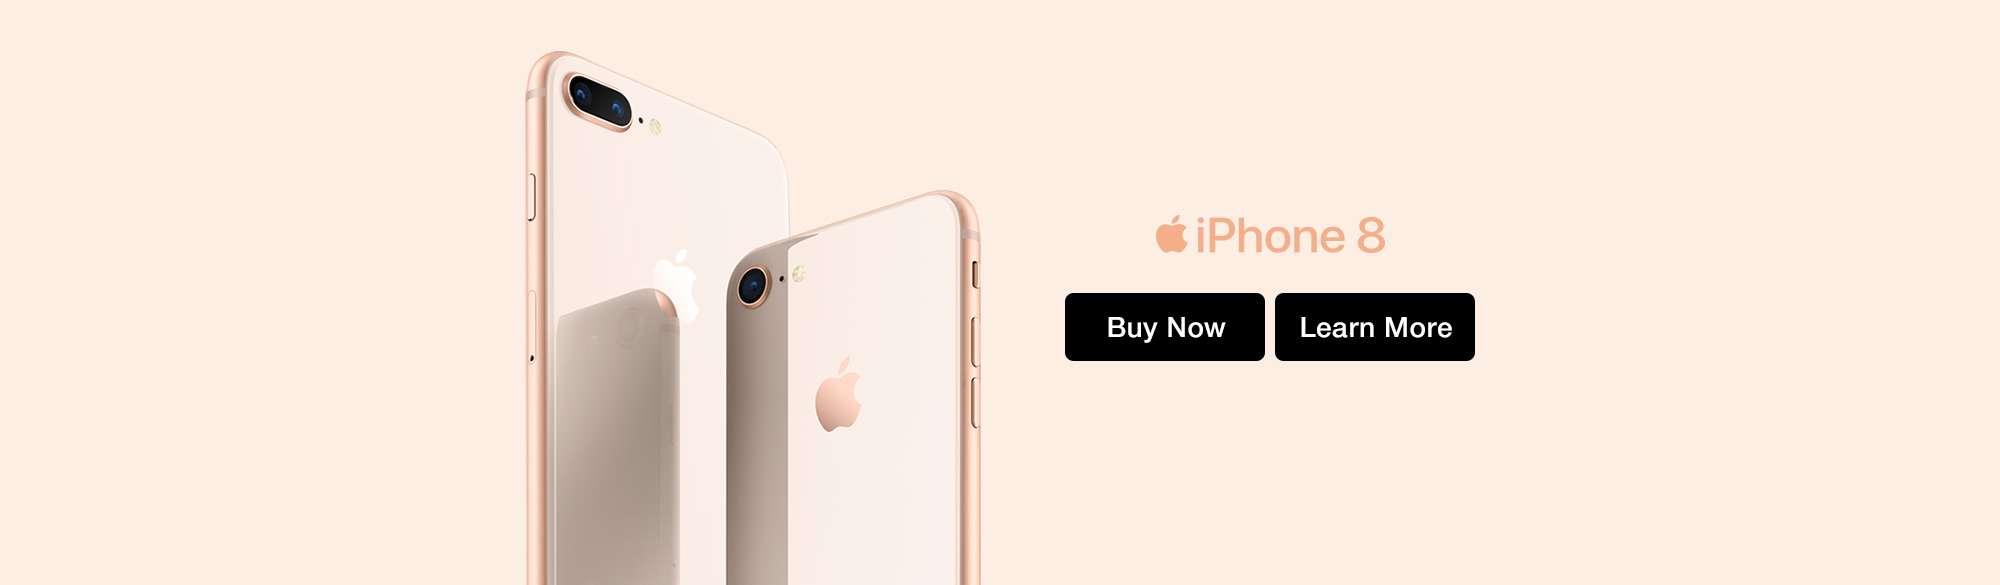 iPhone 8 Buy Now Learn More